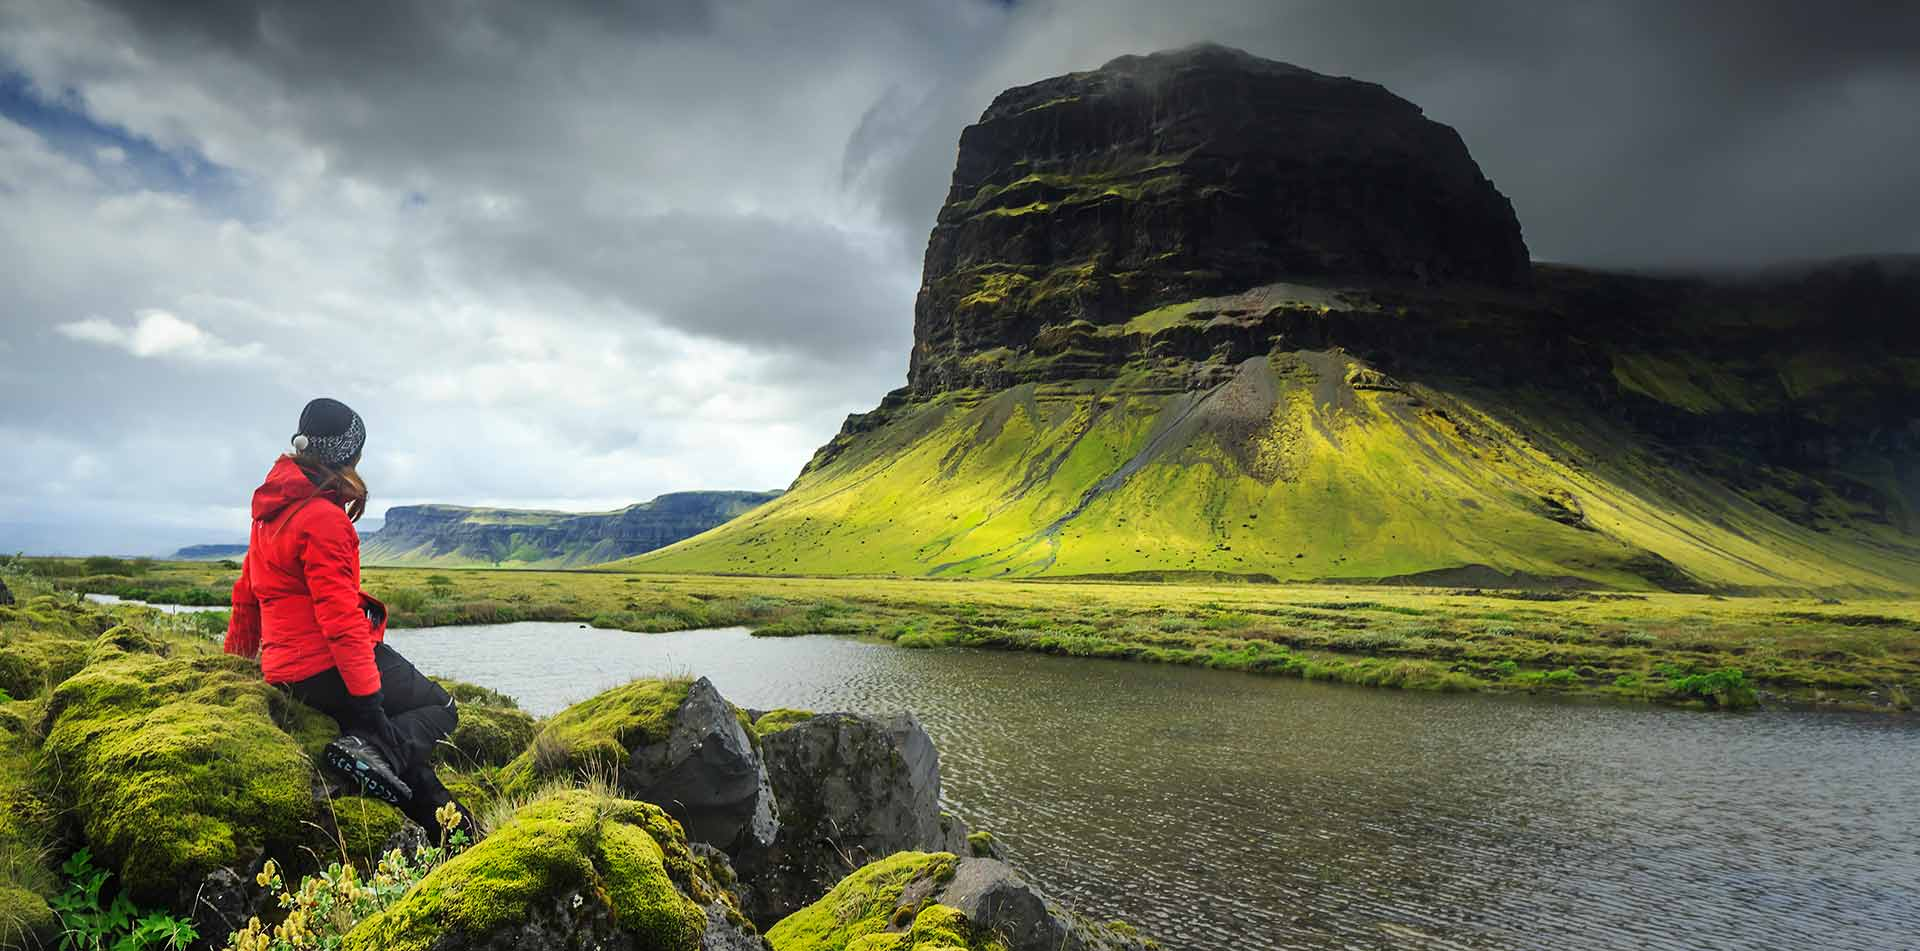 Europe Iceland woman sitting in front of lush green landscape with mountain cliff - luxury vacation destinations